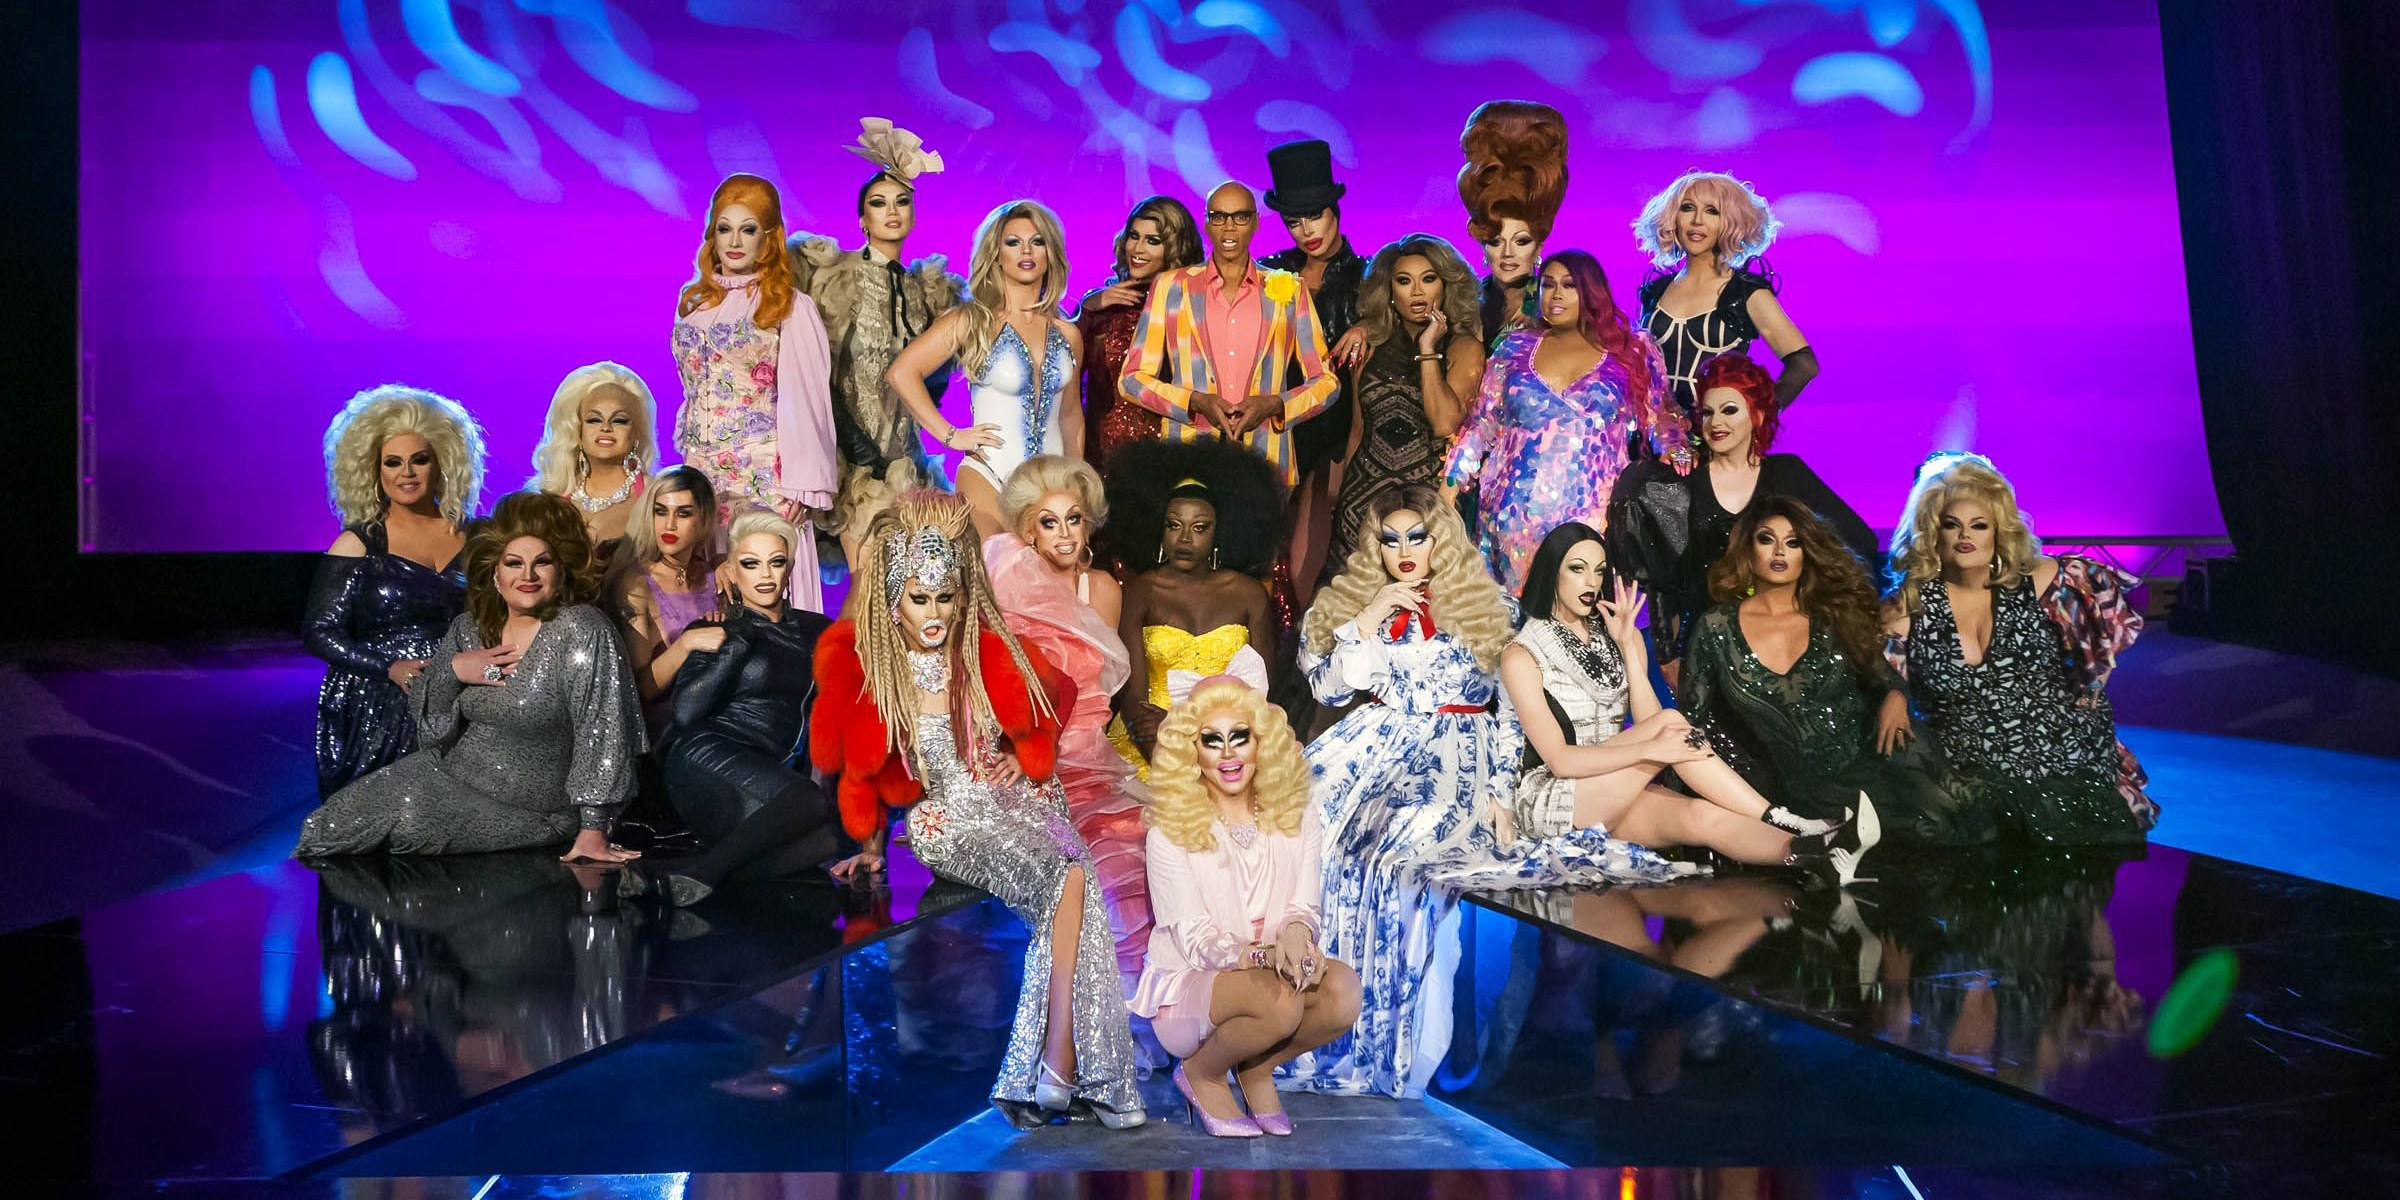 RuPaul's Drag Race cast